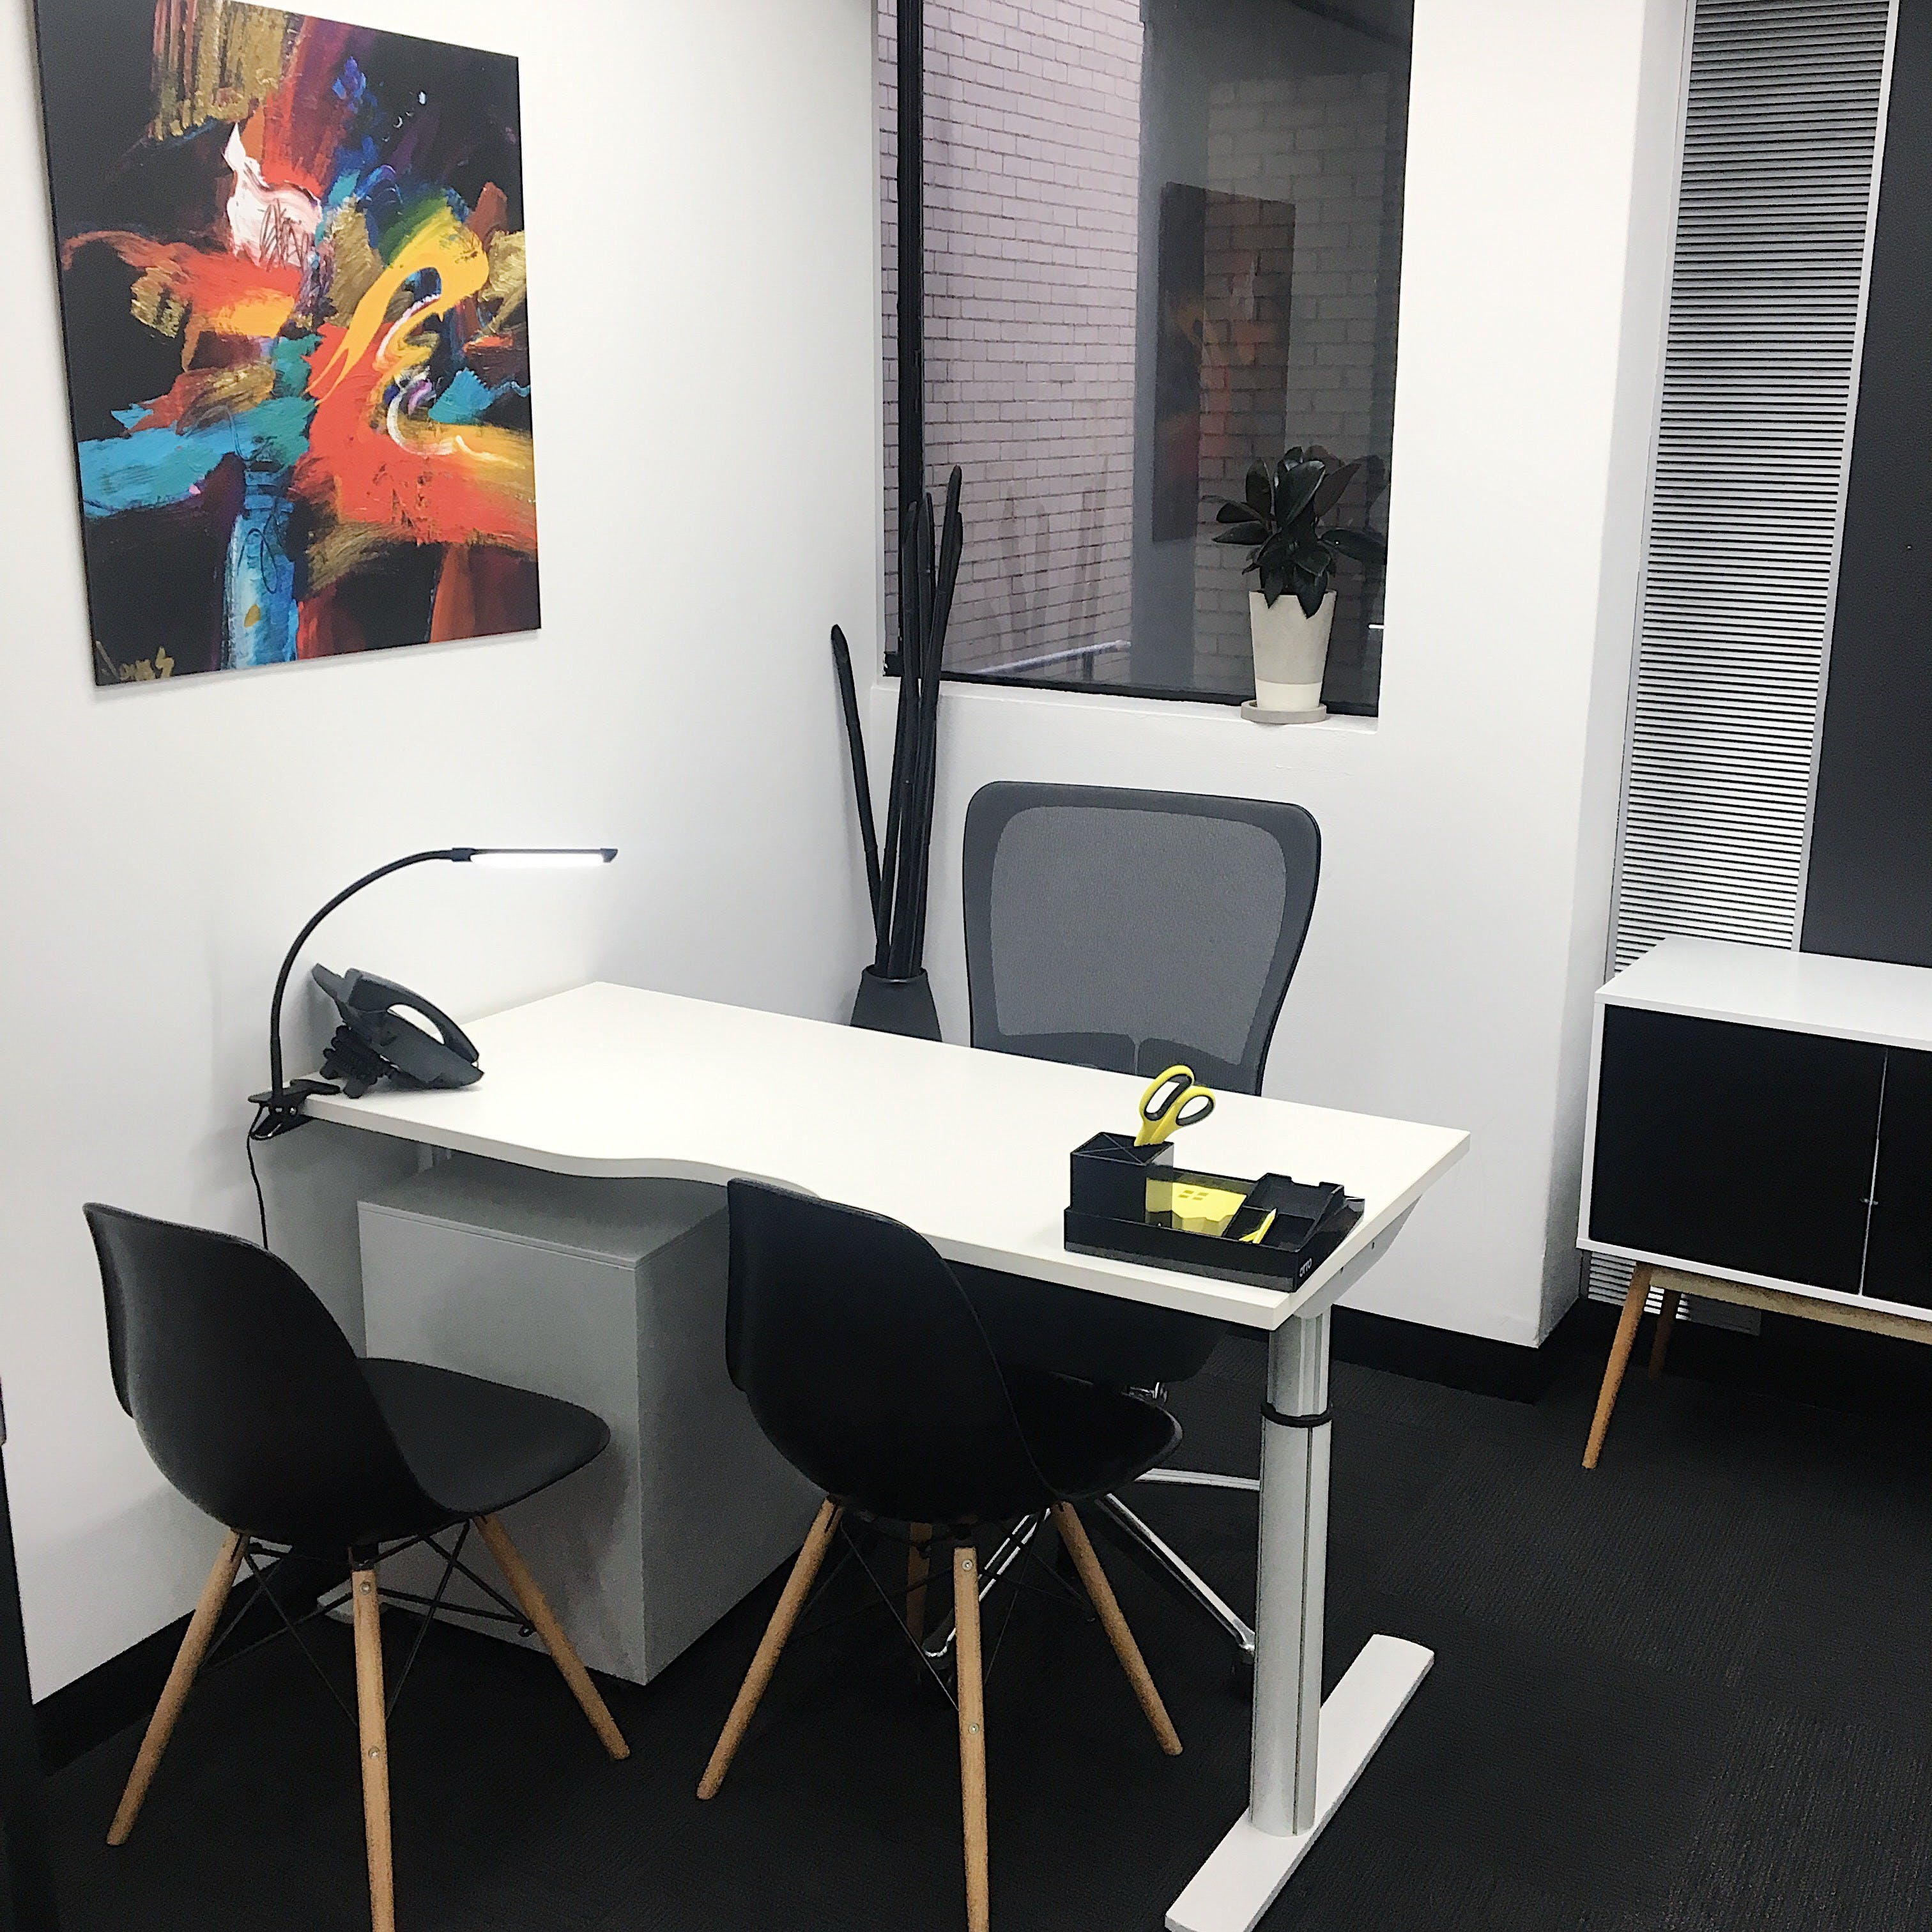 Suite 203, private office at Anytime Offices, image 2